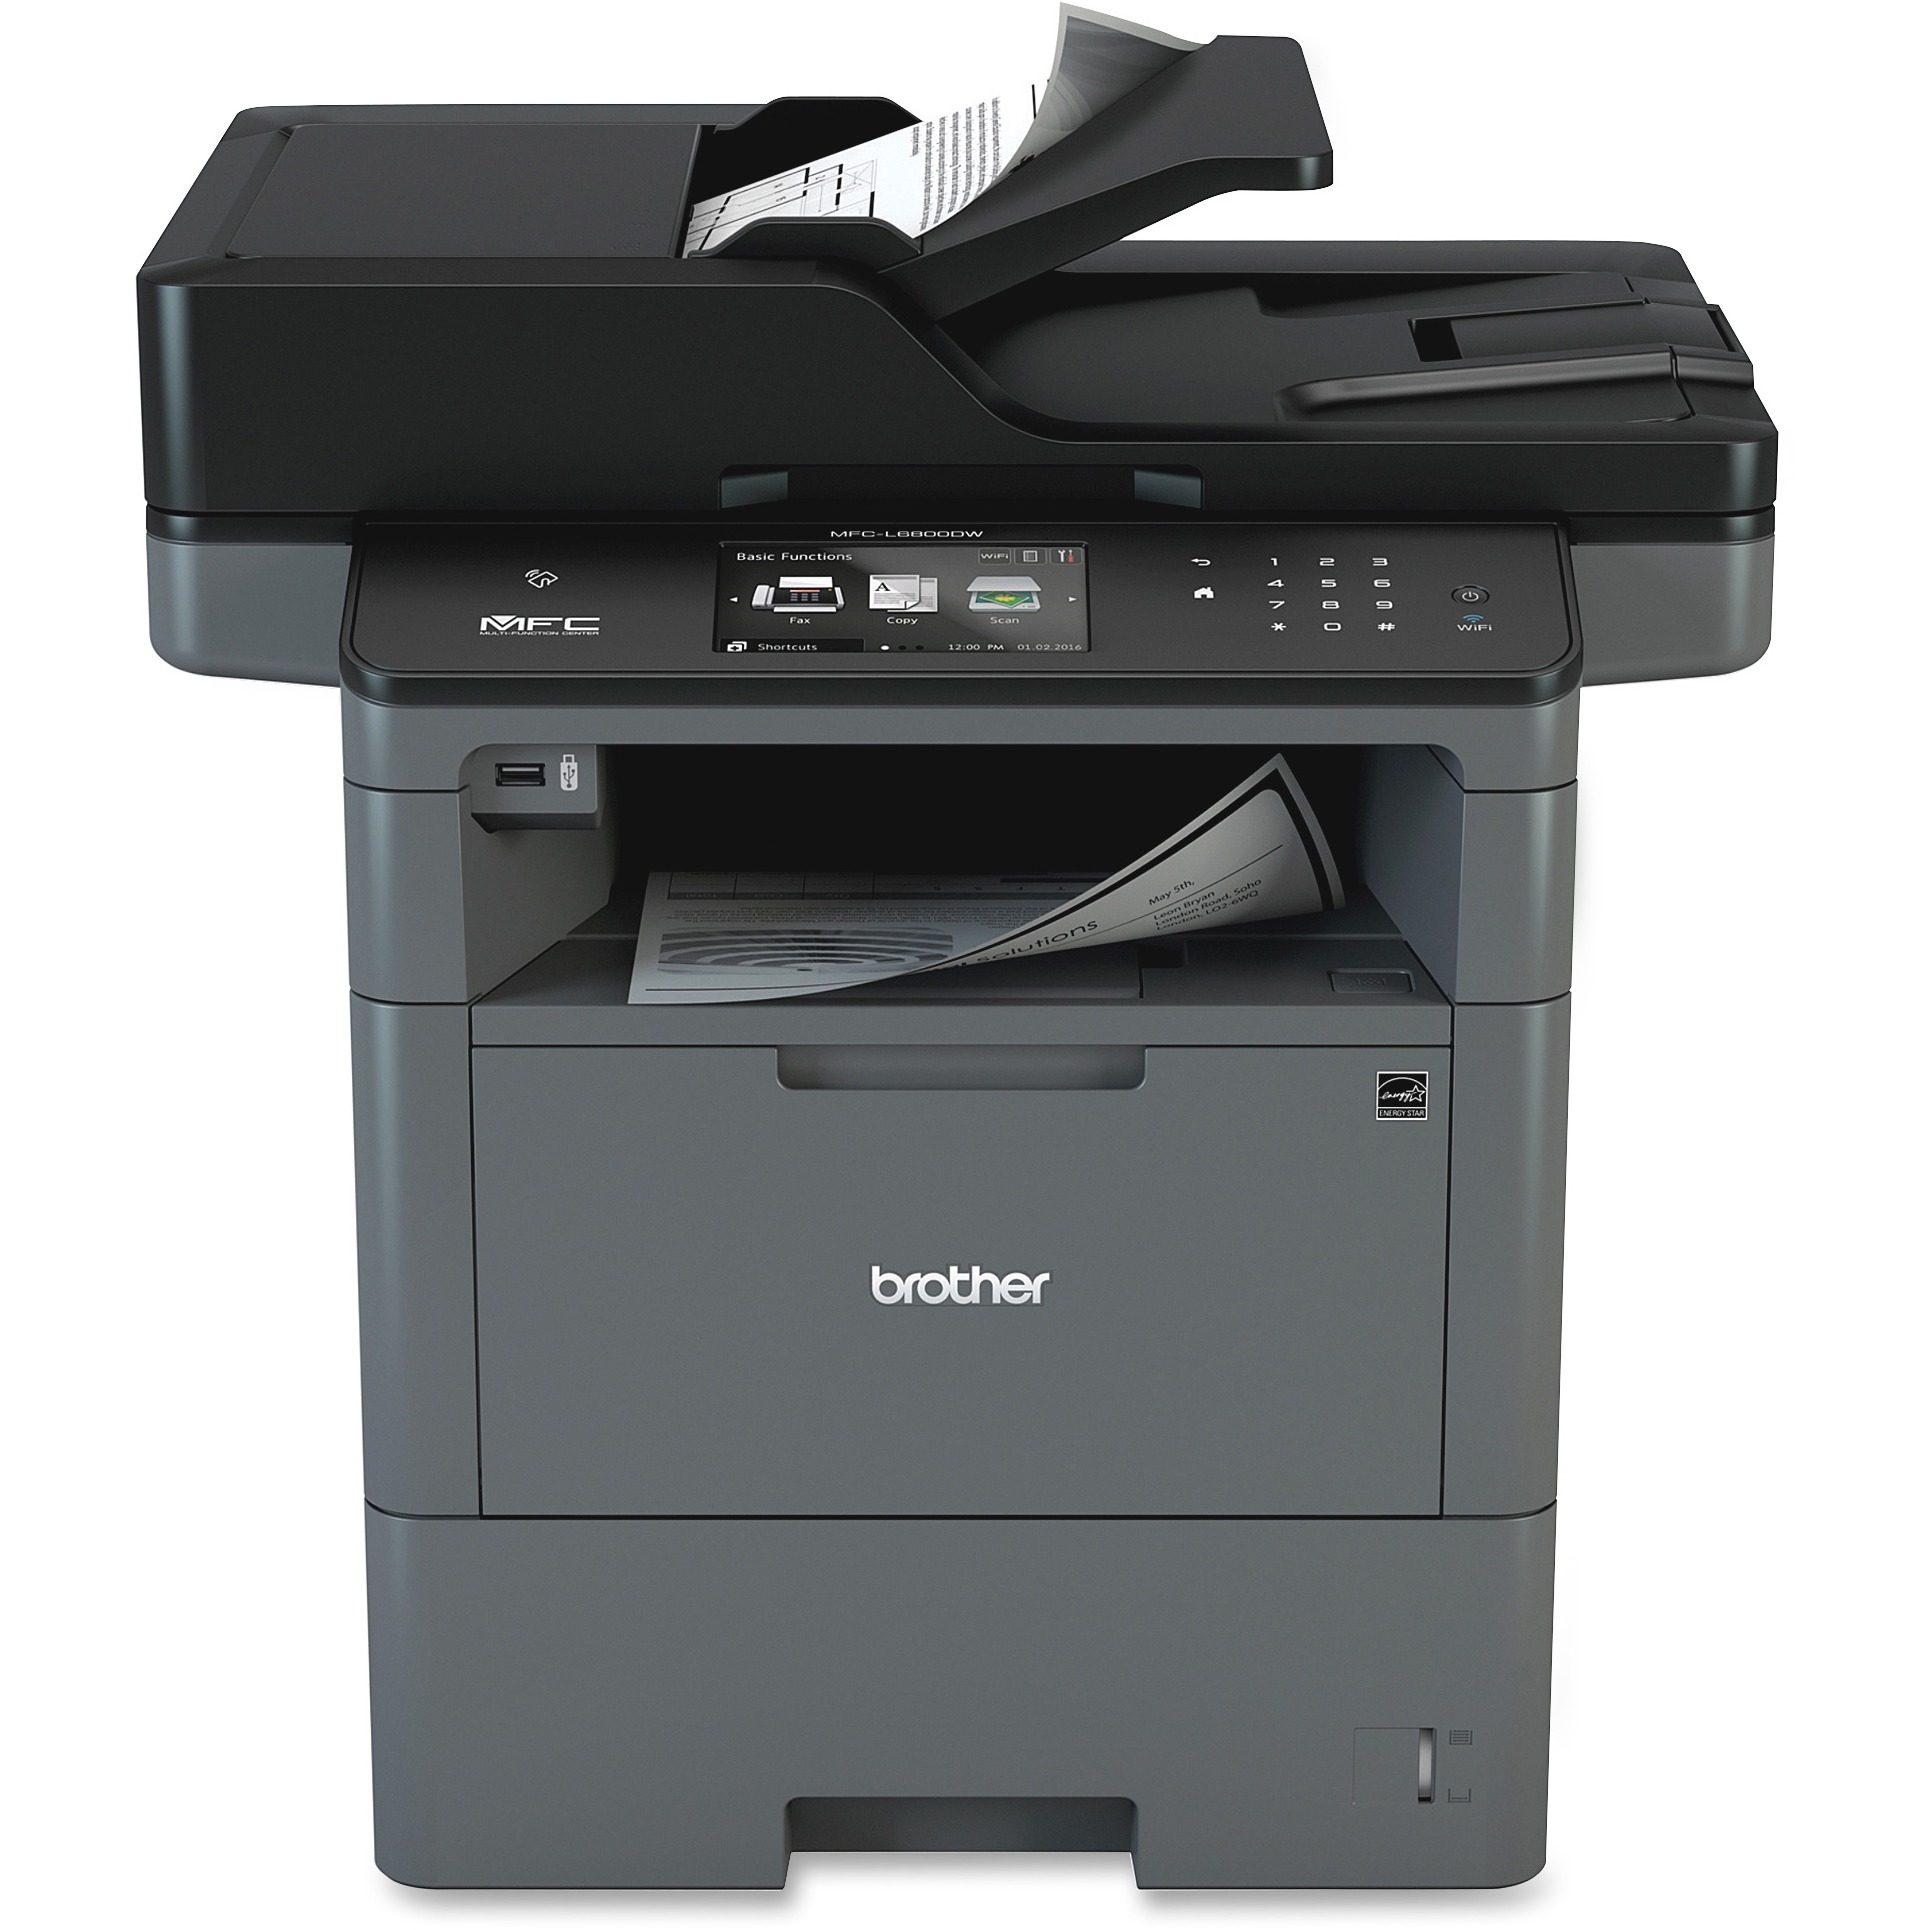 Brother MFC-L6800DW Wireless Monochrome All-in-One Laser Printer, Copy/Fax/Print/Scan